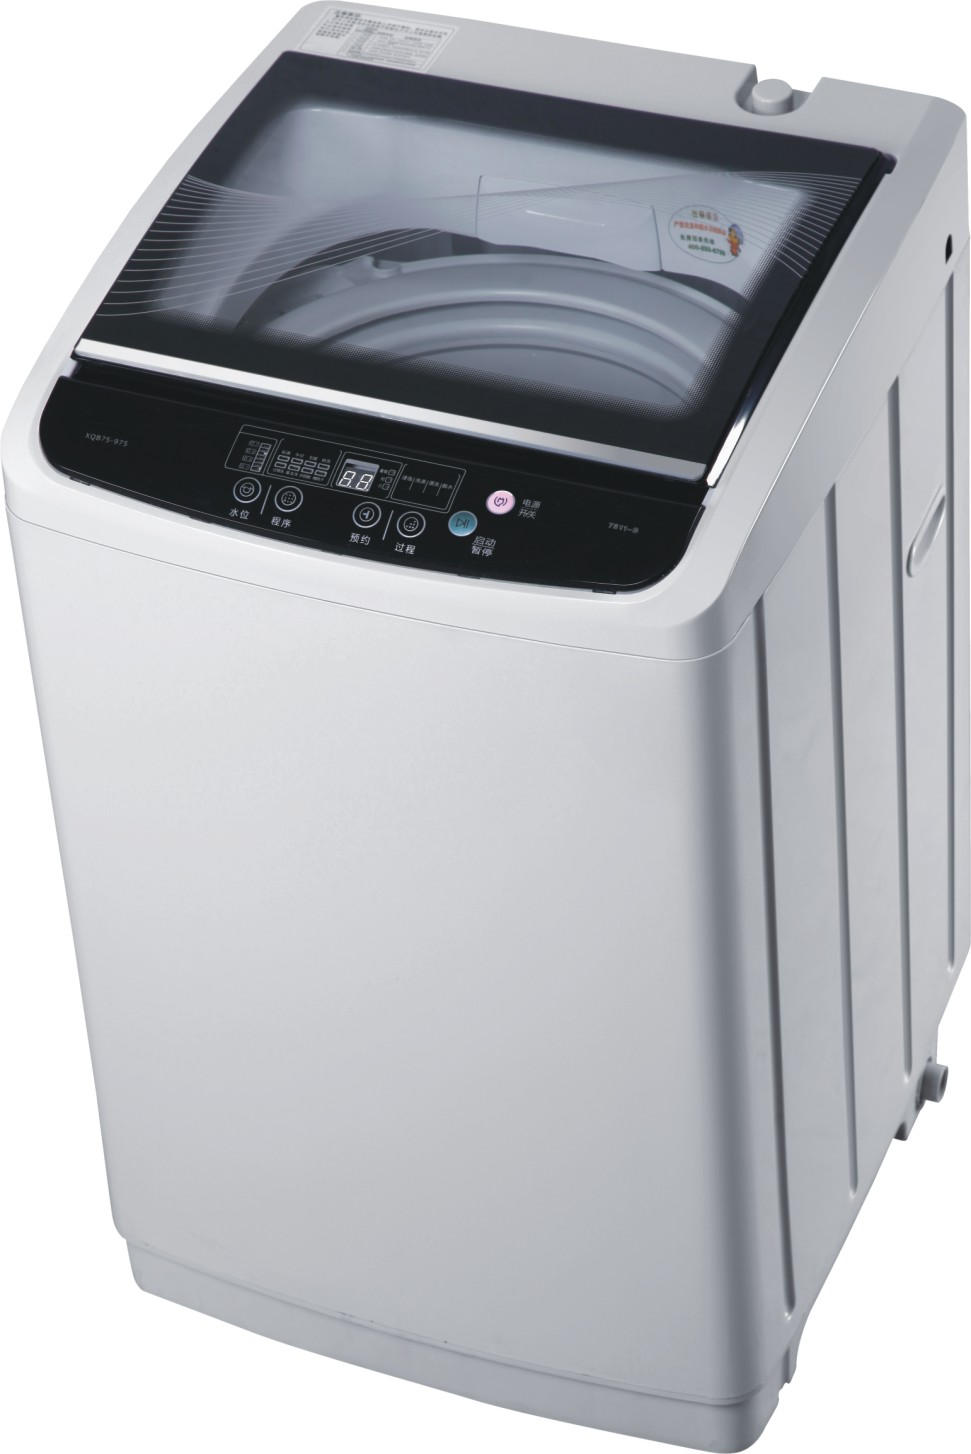 fully automatic washing machine, XQB80-980